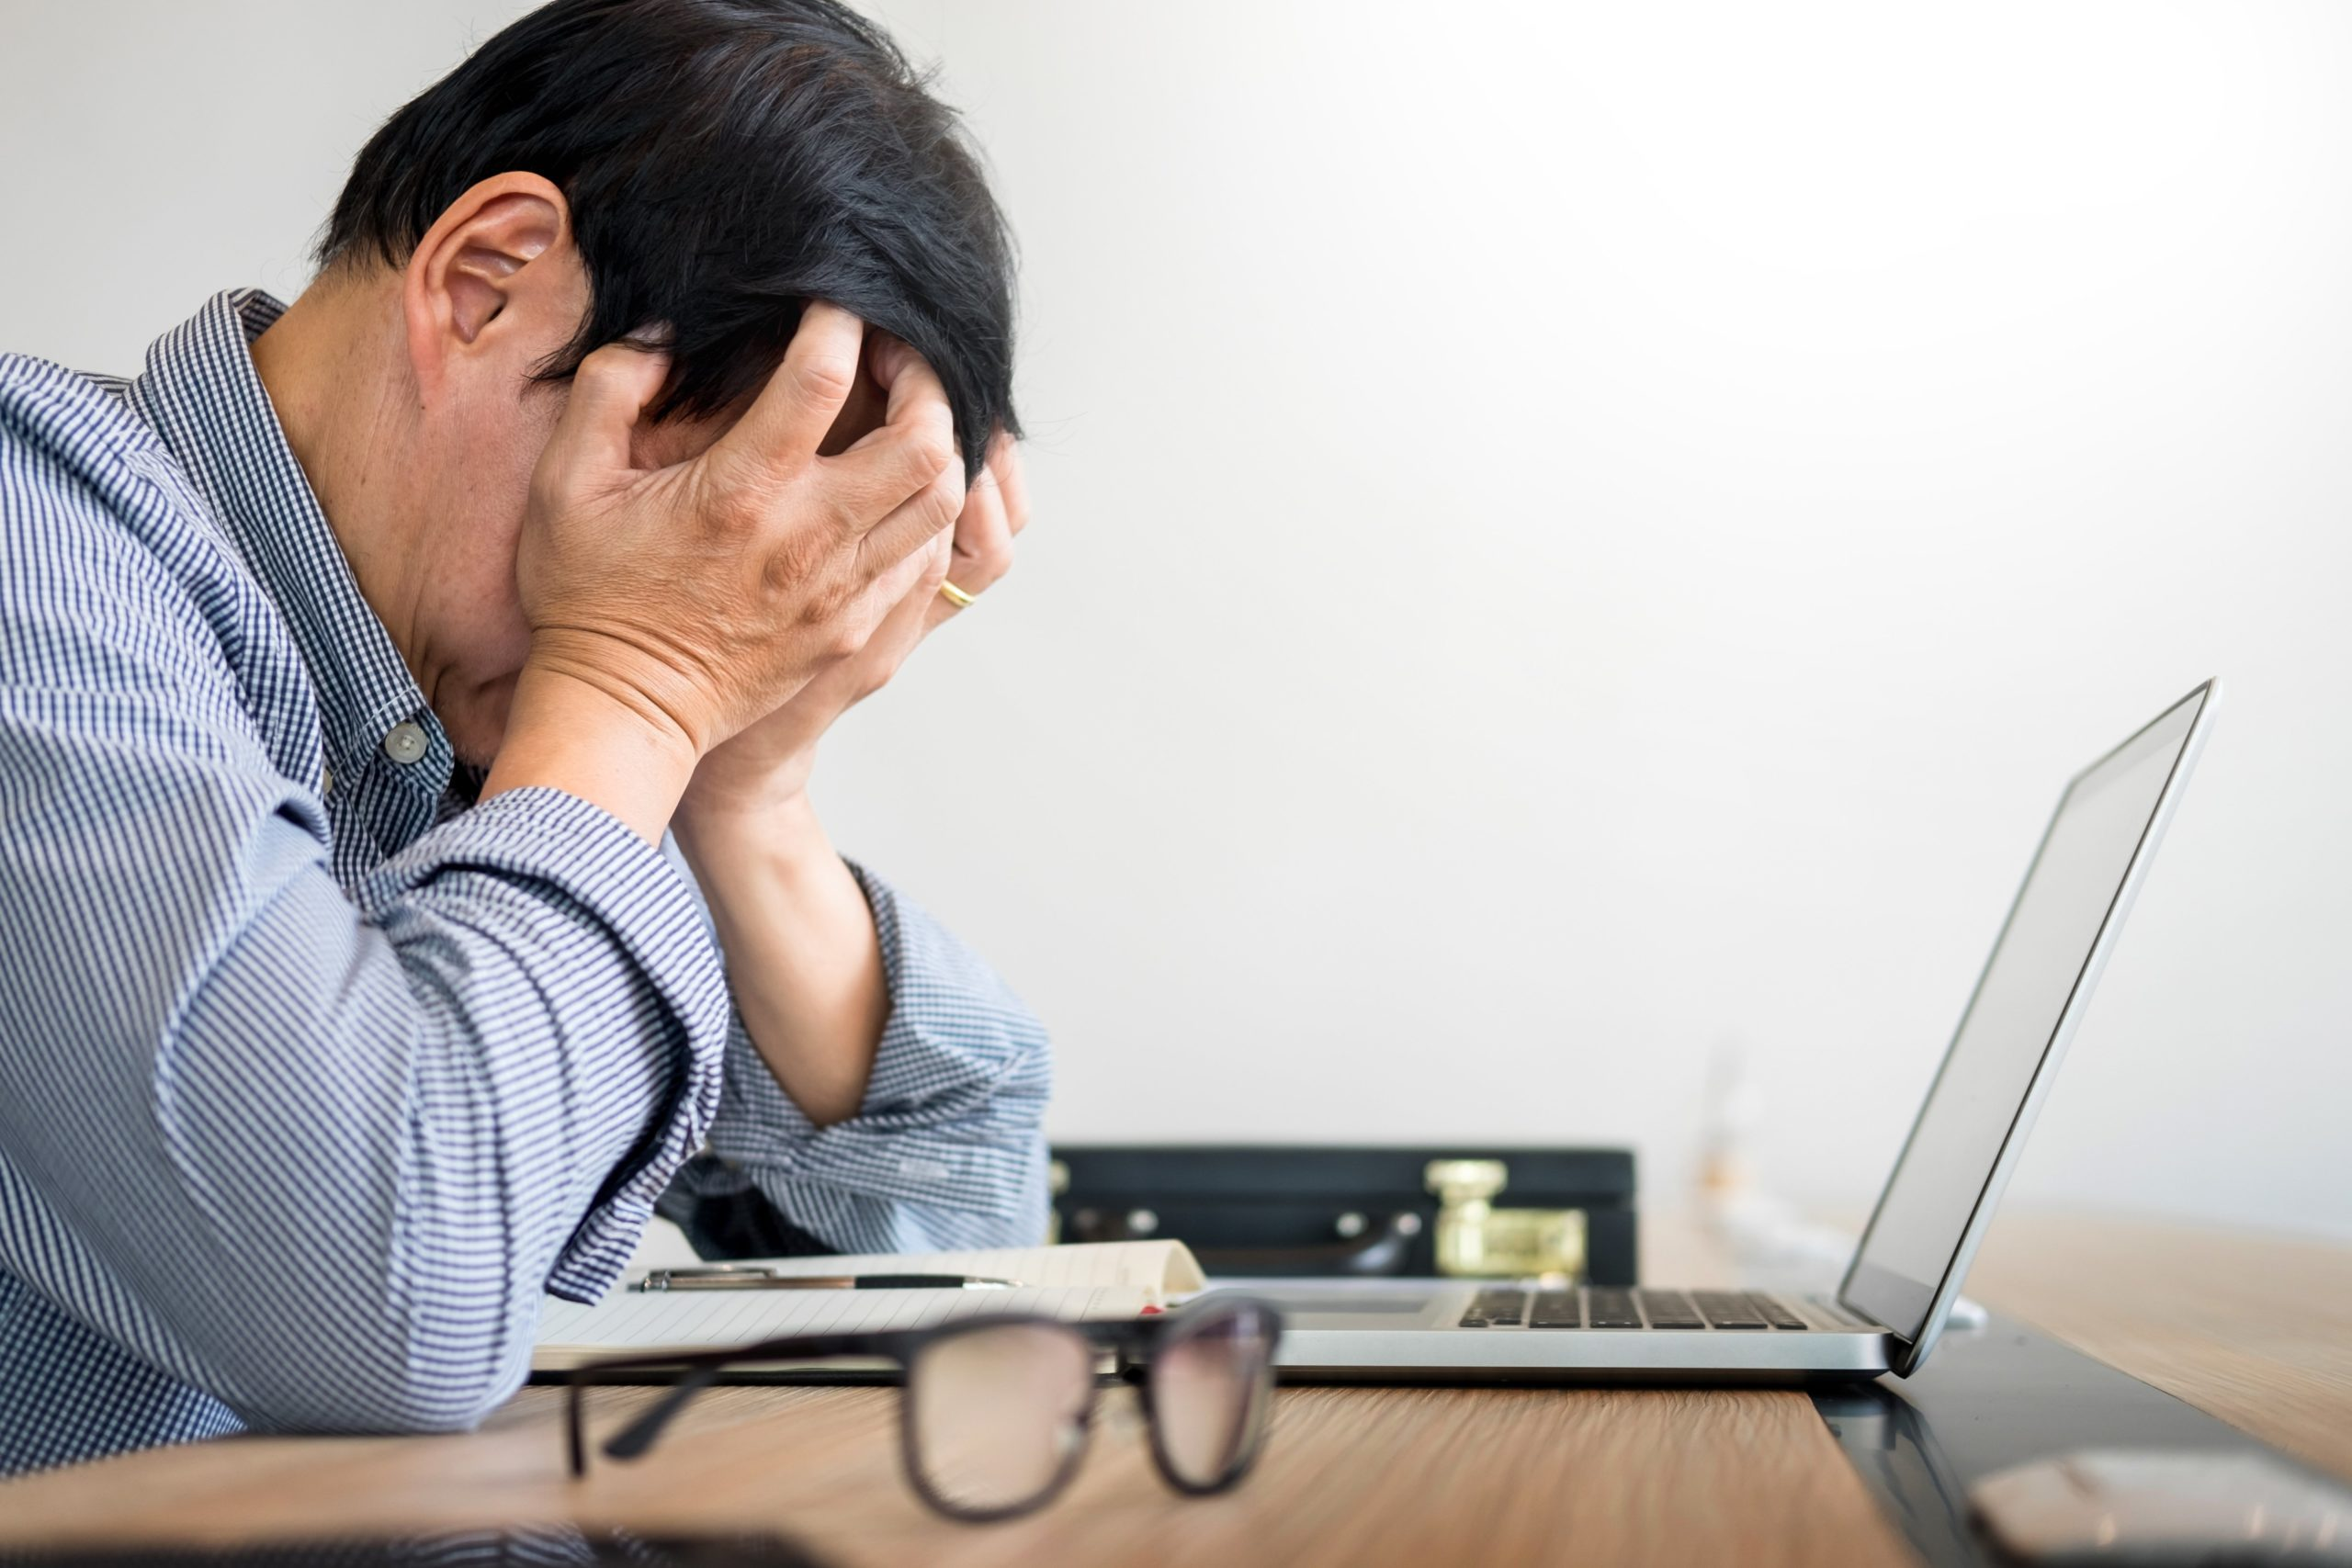 Stressed businessman Feeling sick and tired while sitting at laptop